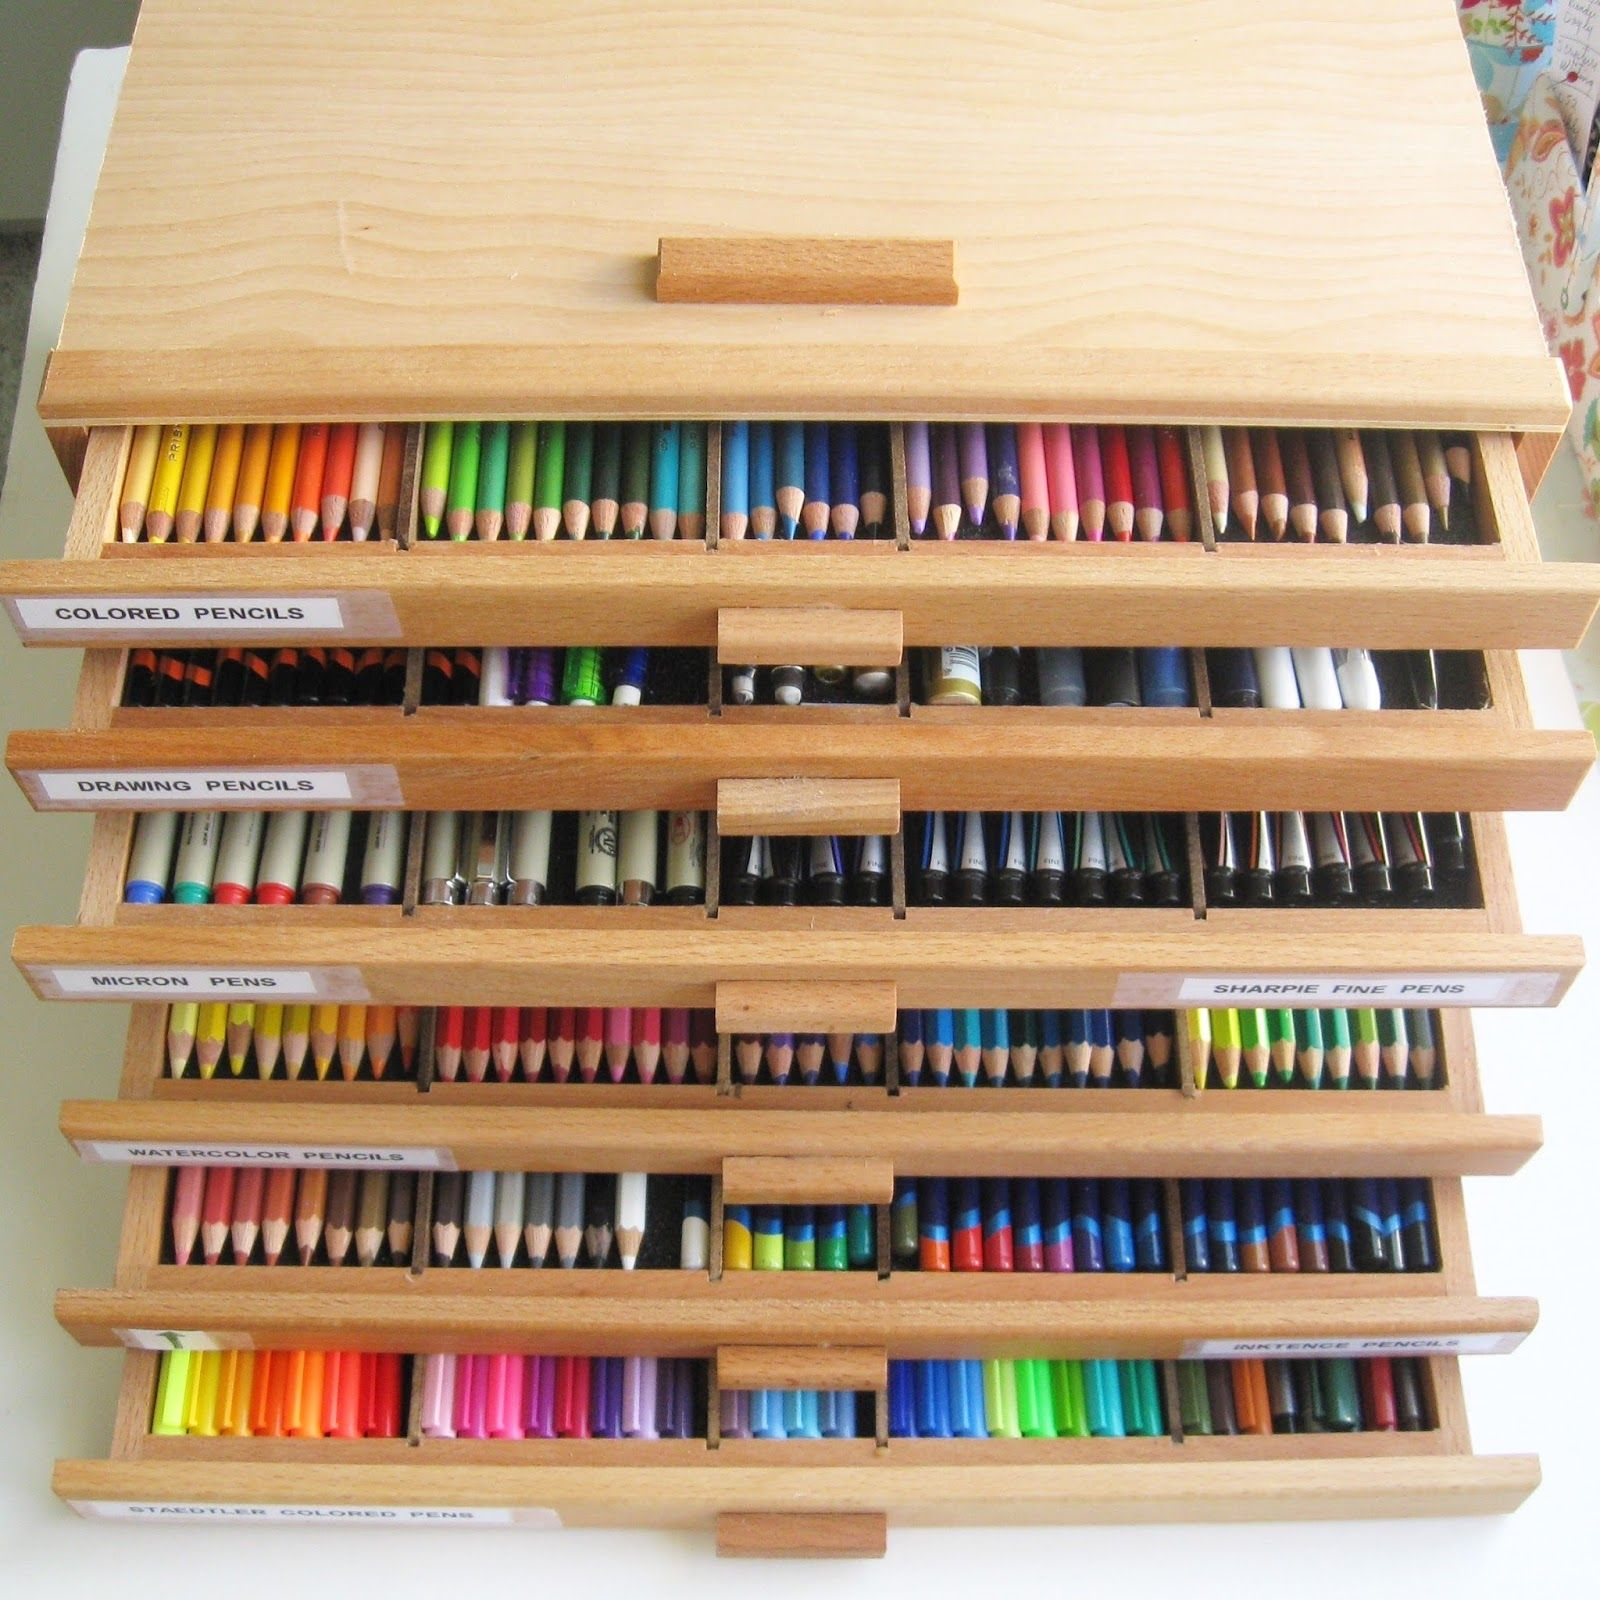 Bedroom Art Supplies: A Palette Full Of Blessings: Art Supplies And Study. I